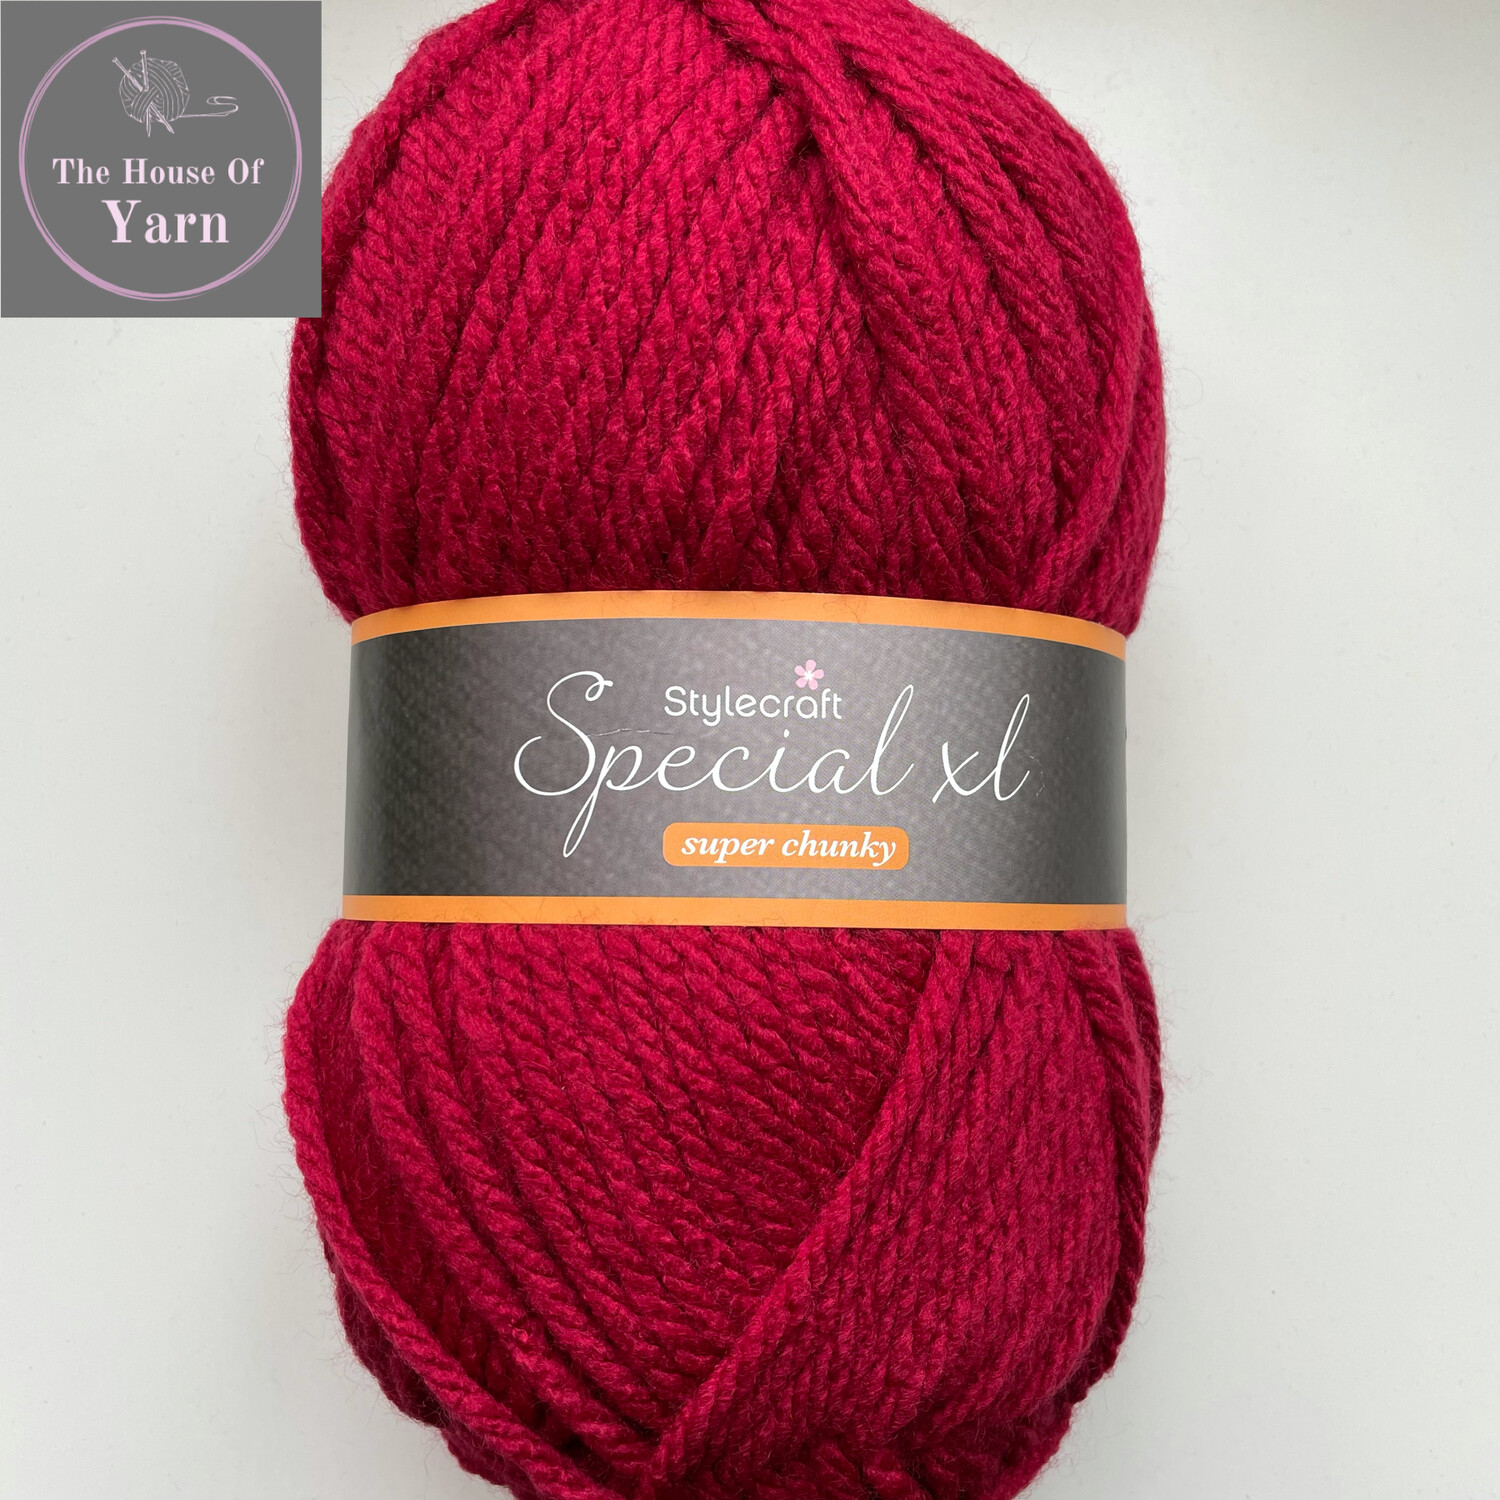 Cleret 1123 Stylecraft Special XL Super Chunky